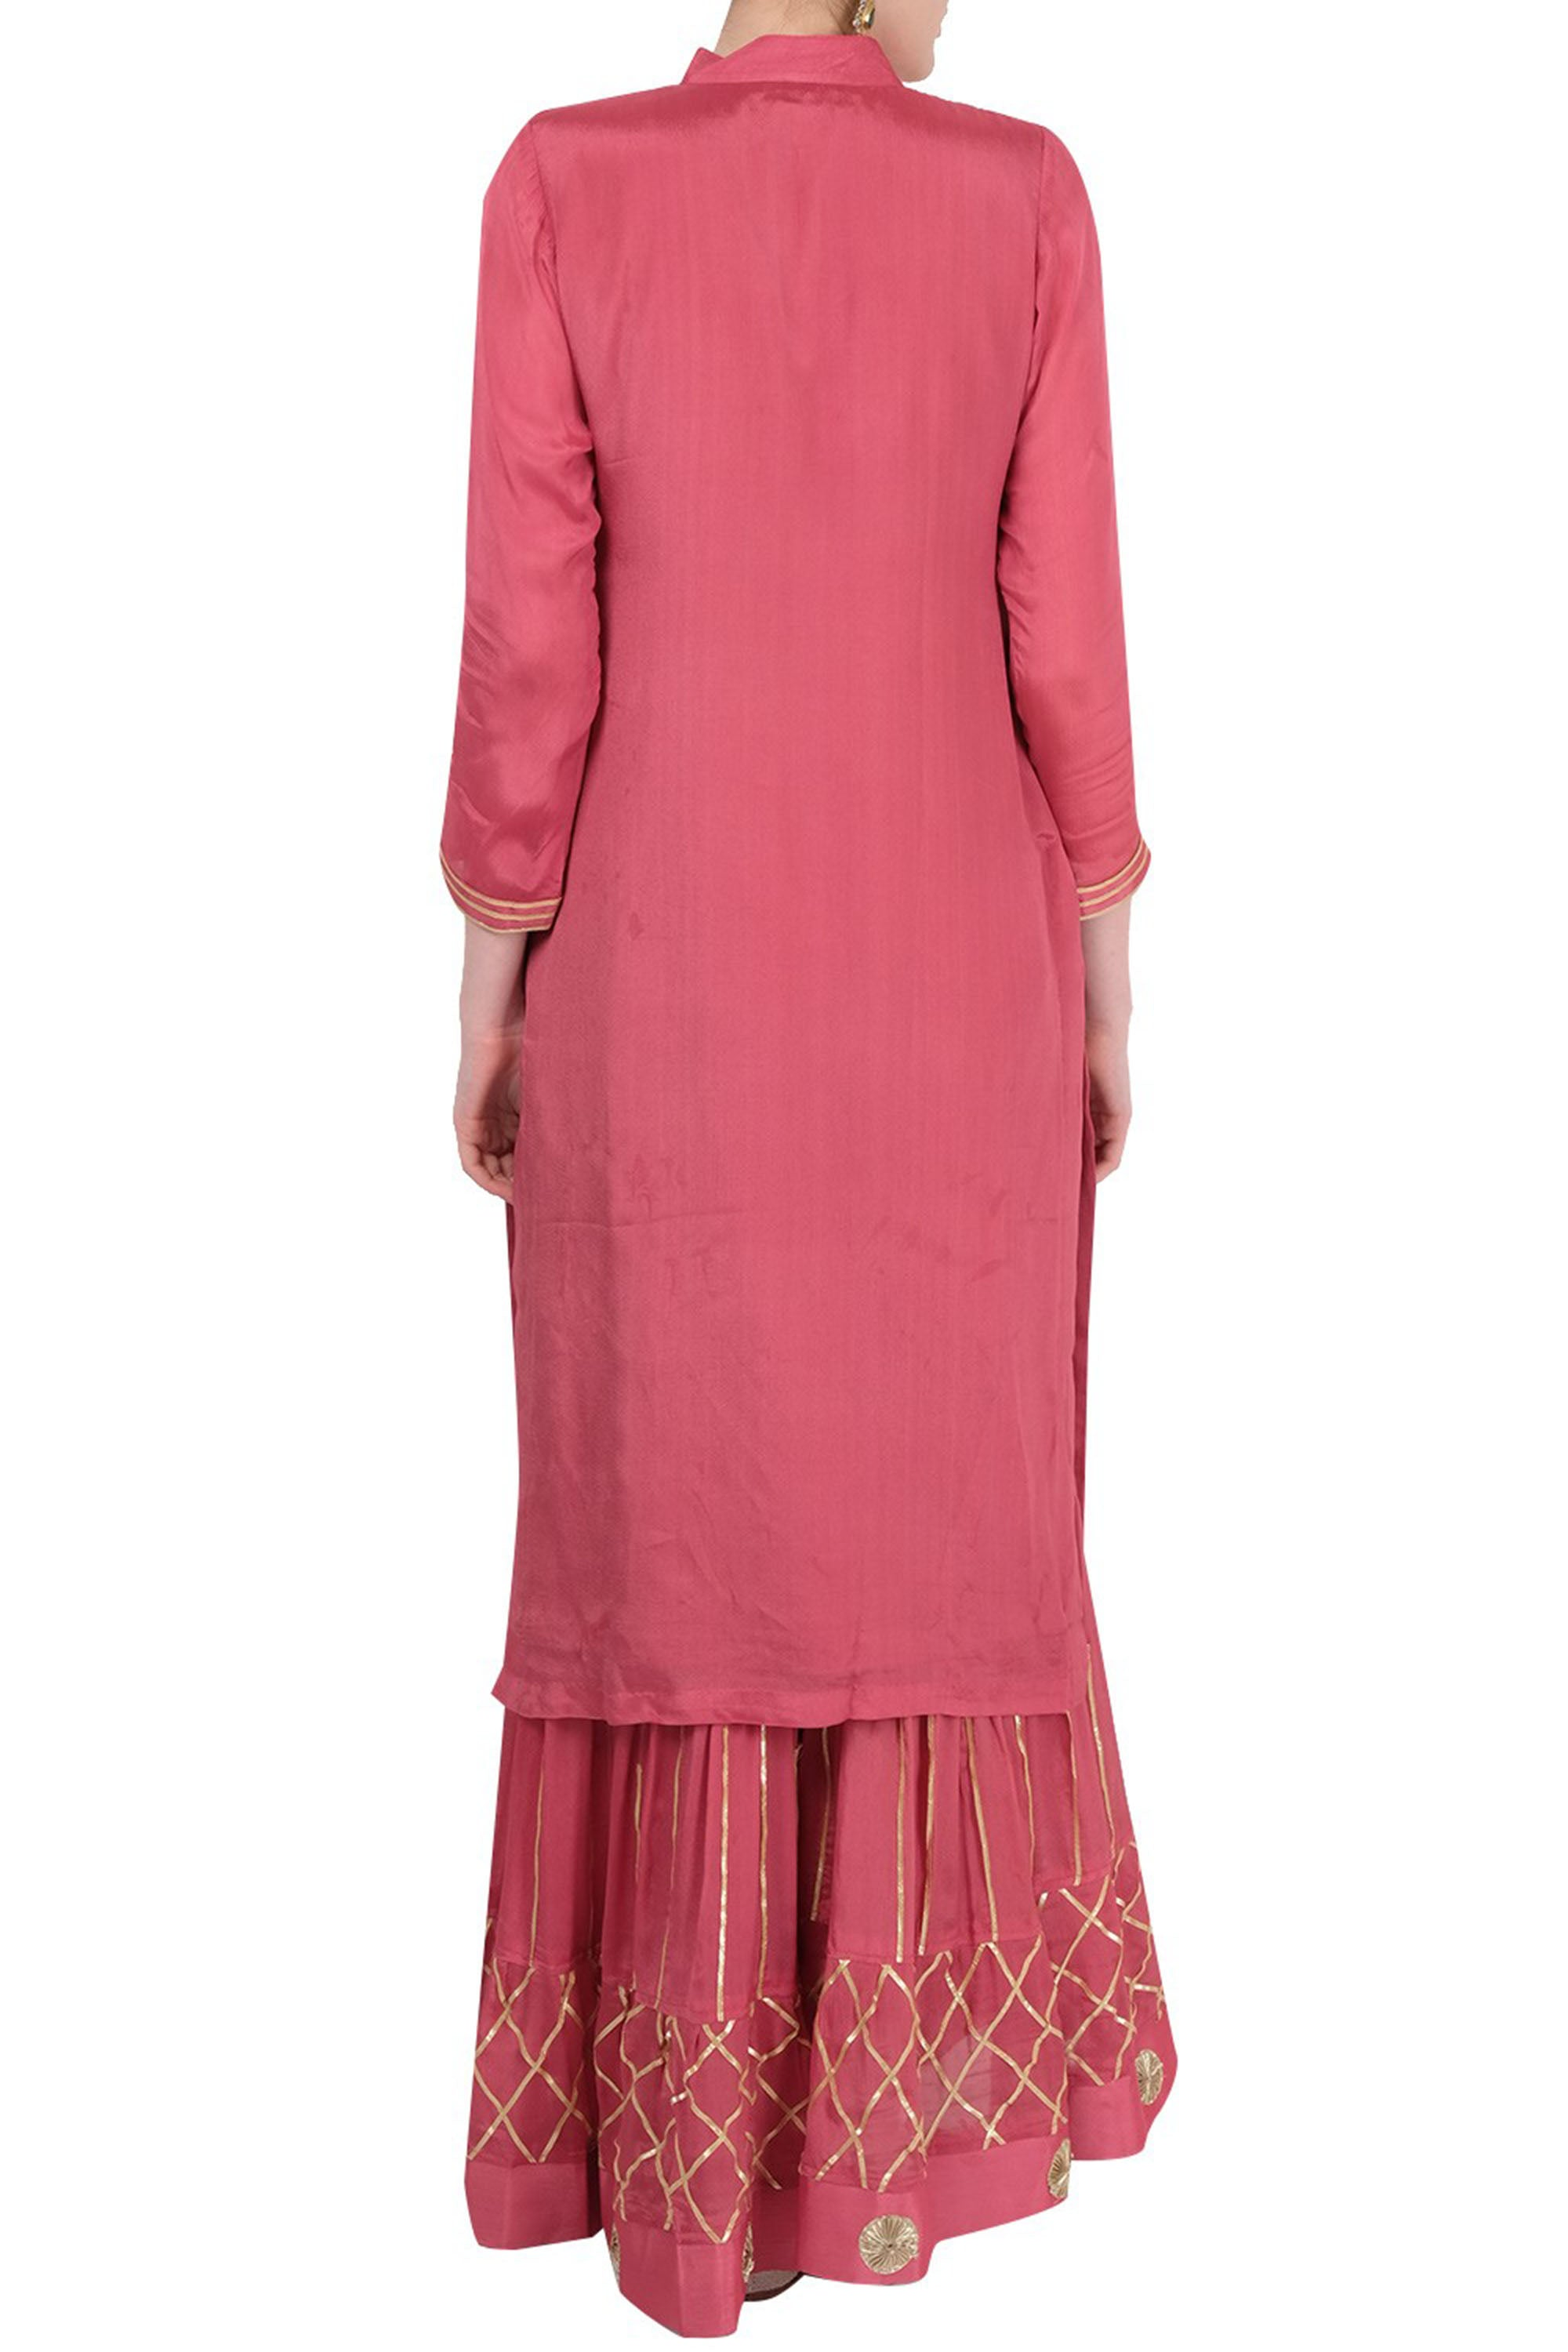 Peach Gharara Suit Back